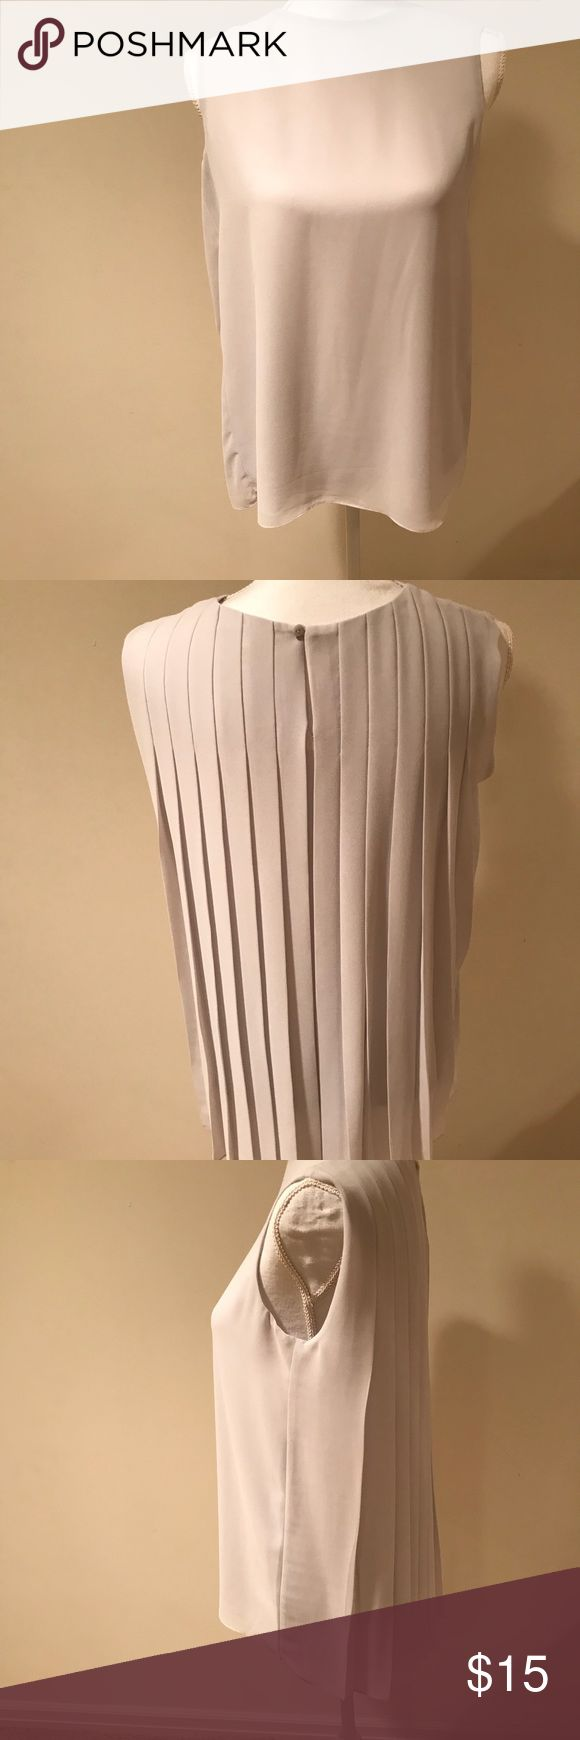 A Uniqlo blouse that is gently used. This Uniqlo blouse was worn twice. It is in excellent condition. This blouse is light grey and very lightweight. It is completely pleated in the back with a button closure at the base of the neck. Uniqlo Tops